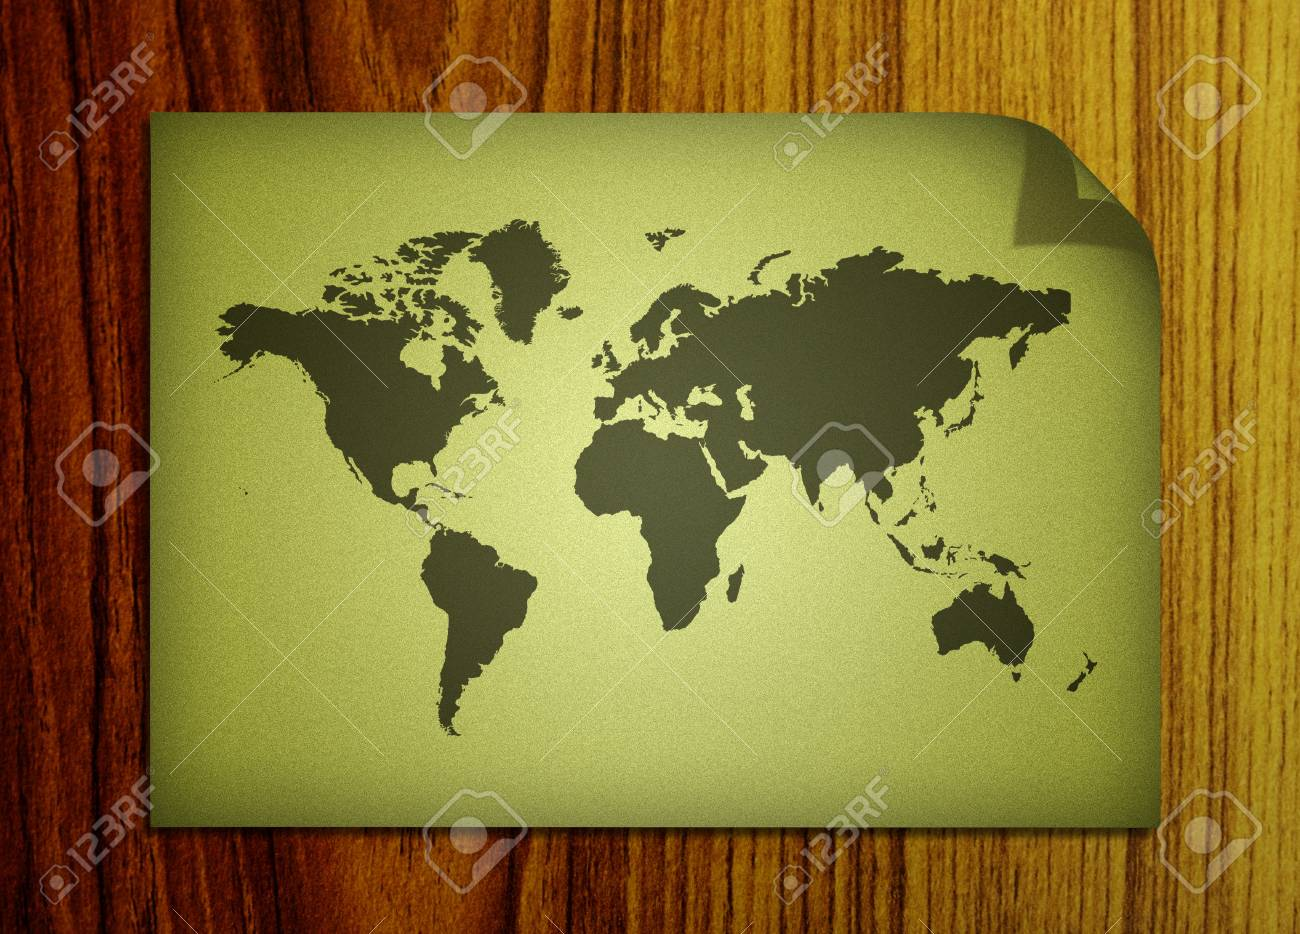 world map on wooden background Stock Photo - 9098272